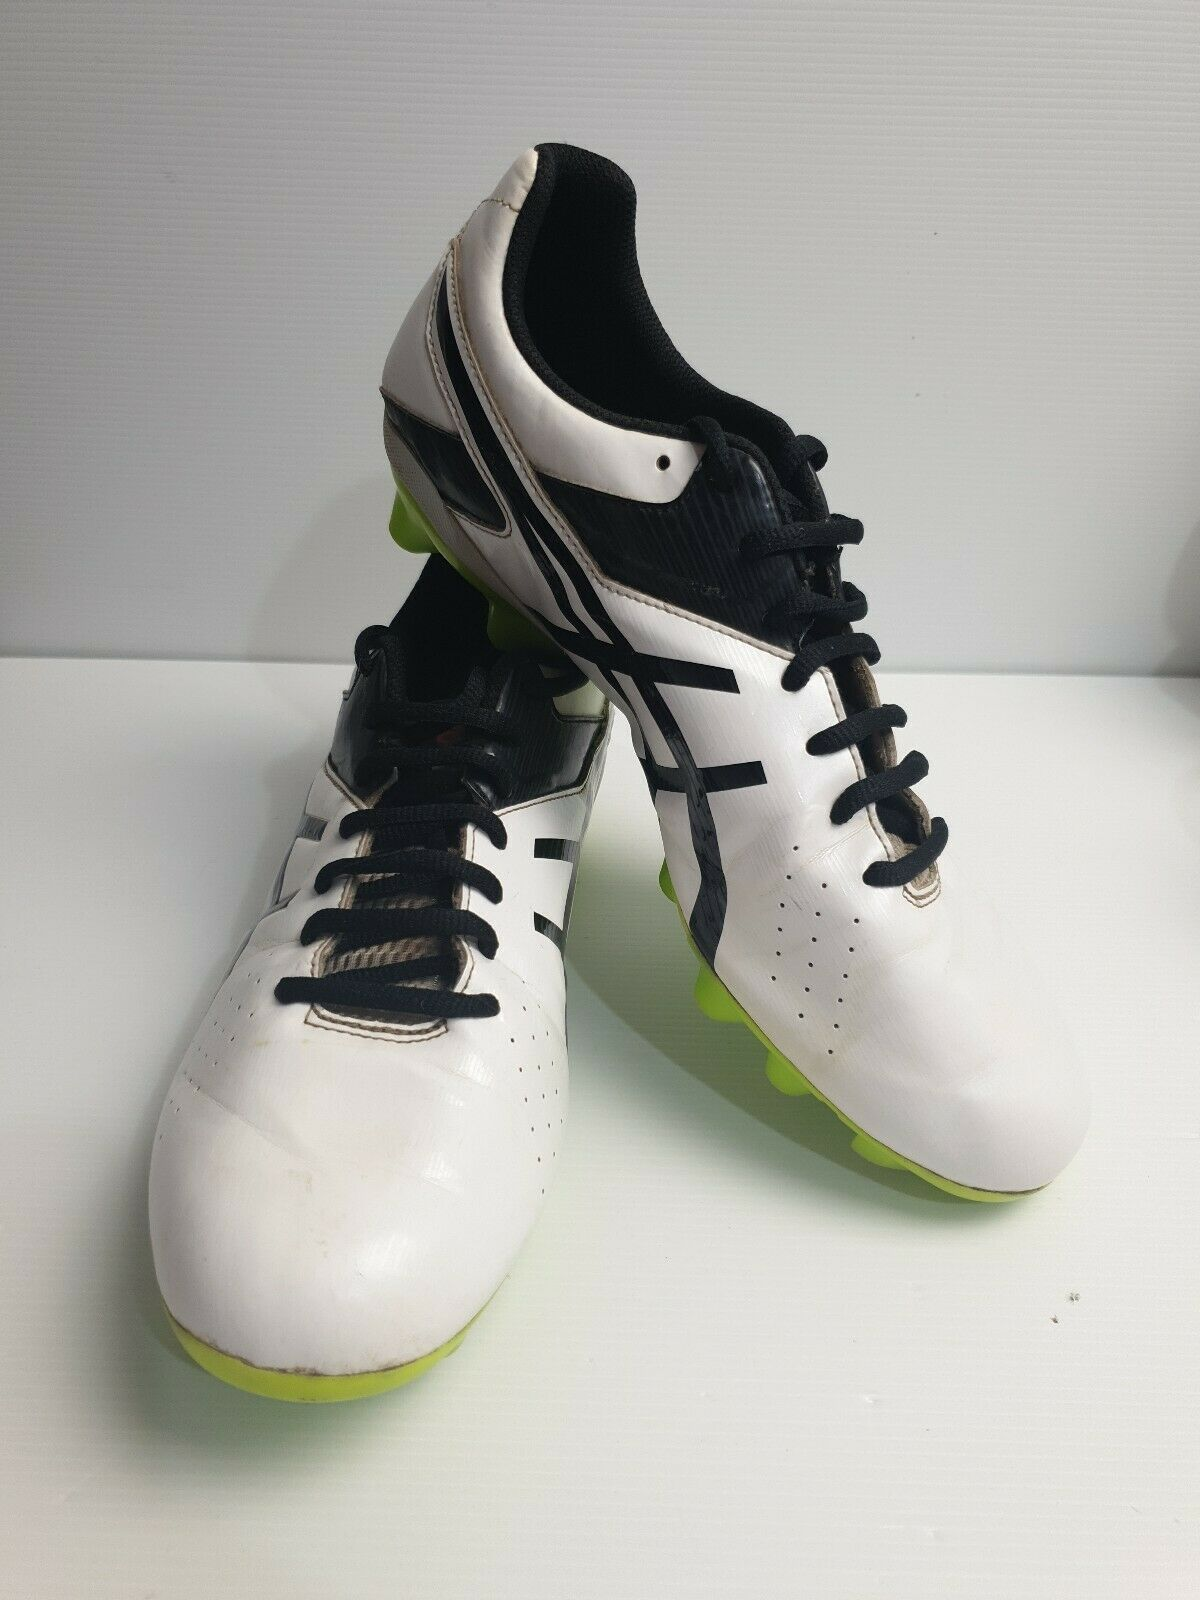 Grillo Dato Usando una computadora  ASICS Lethal Speed St Rugby BOOTS - Vermillion 9.5 for sale online | eBay